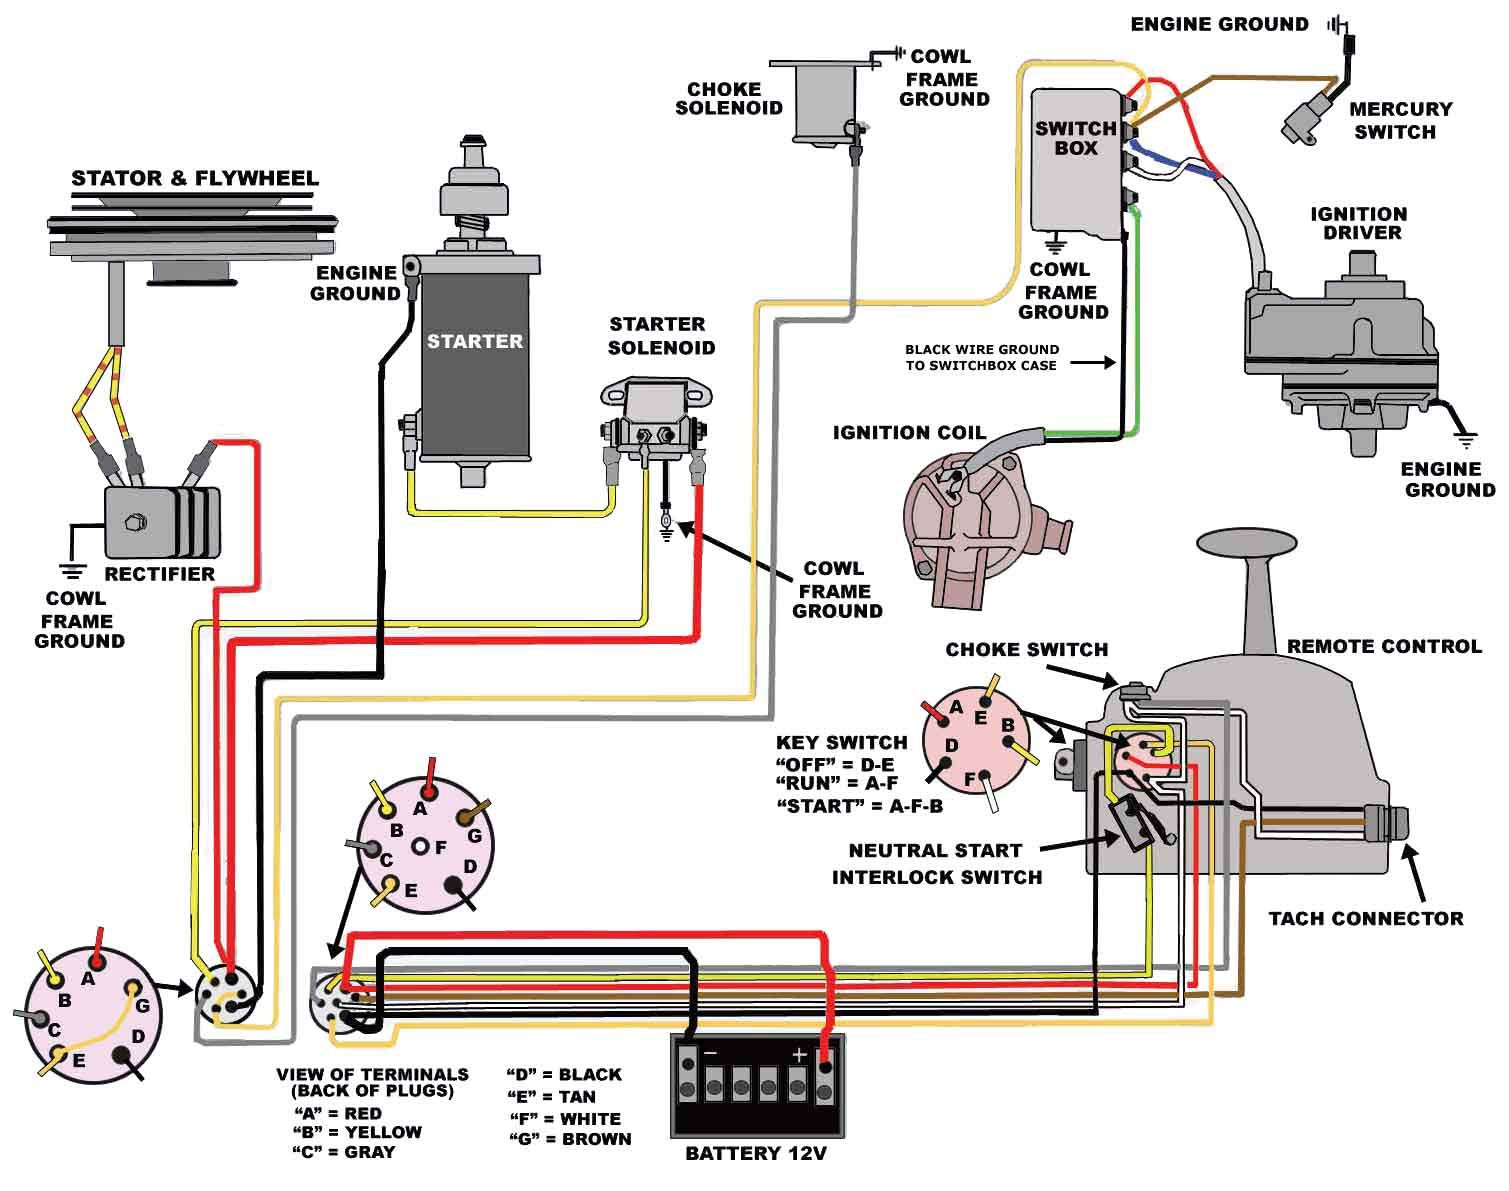 13cfb2d962bcd0c03103625817b7d51d mercury outboard wiring diagram diagram pinterest mercury marine wiring diagrams at sewacar.co